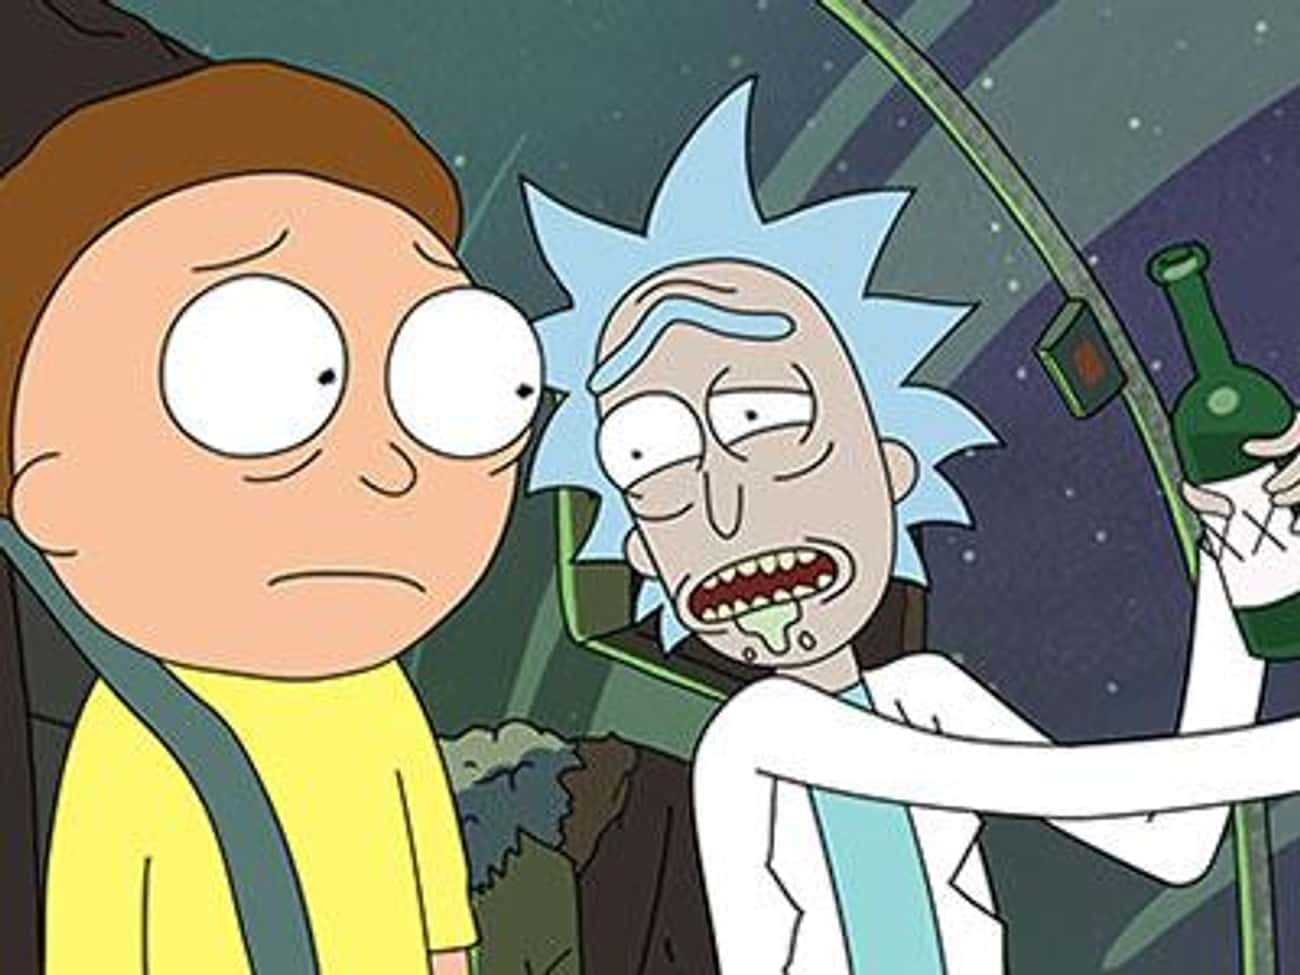 Rick Hasn't Always Been wi is listed (or ranked) 2 on the list These 16 Rick and Morty Fan Theories Will Blow Your Mind